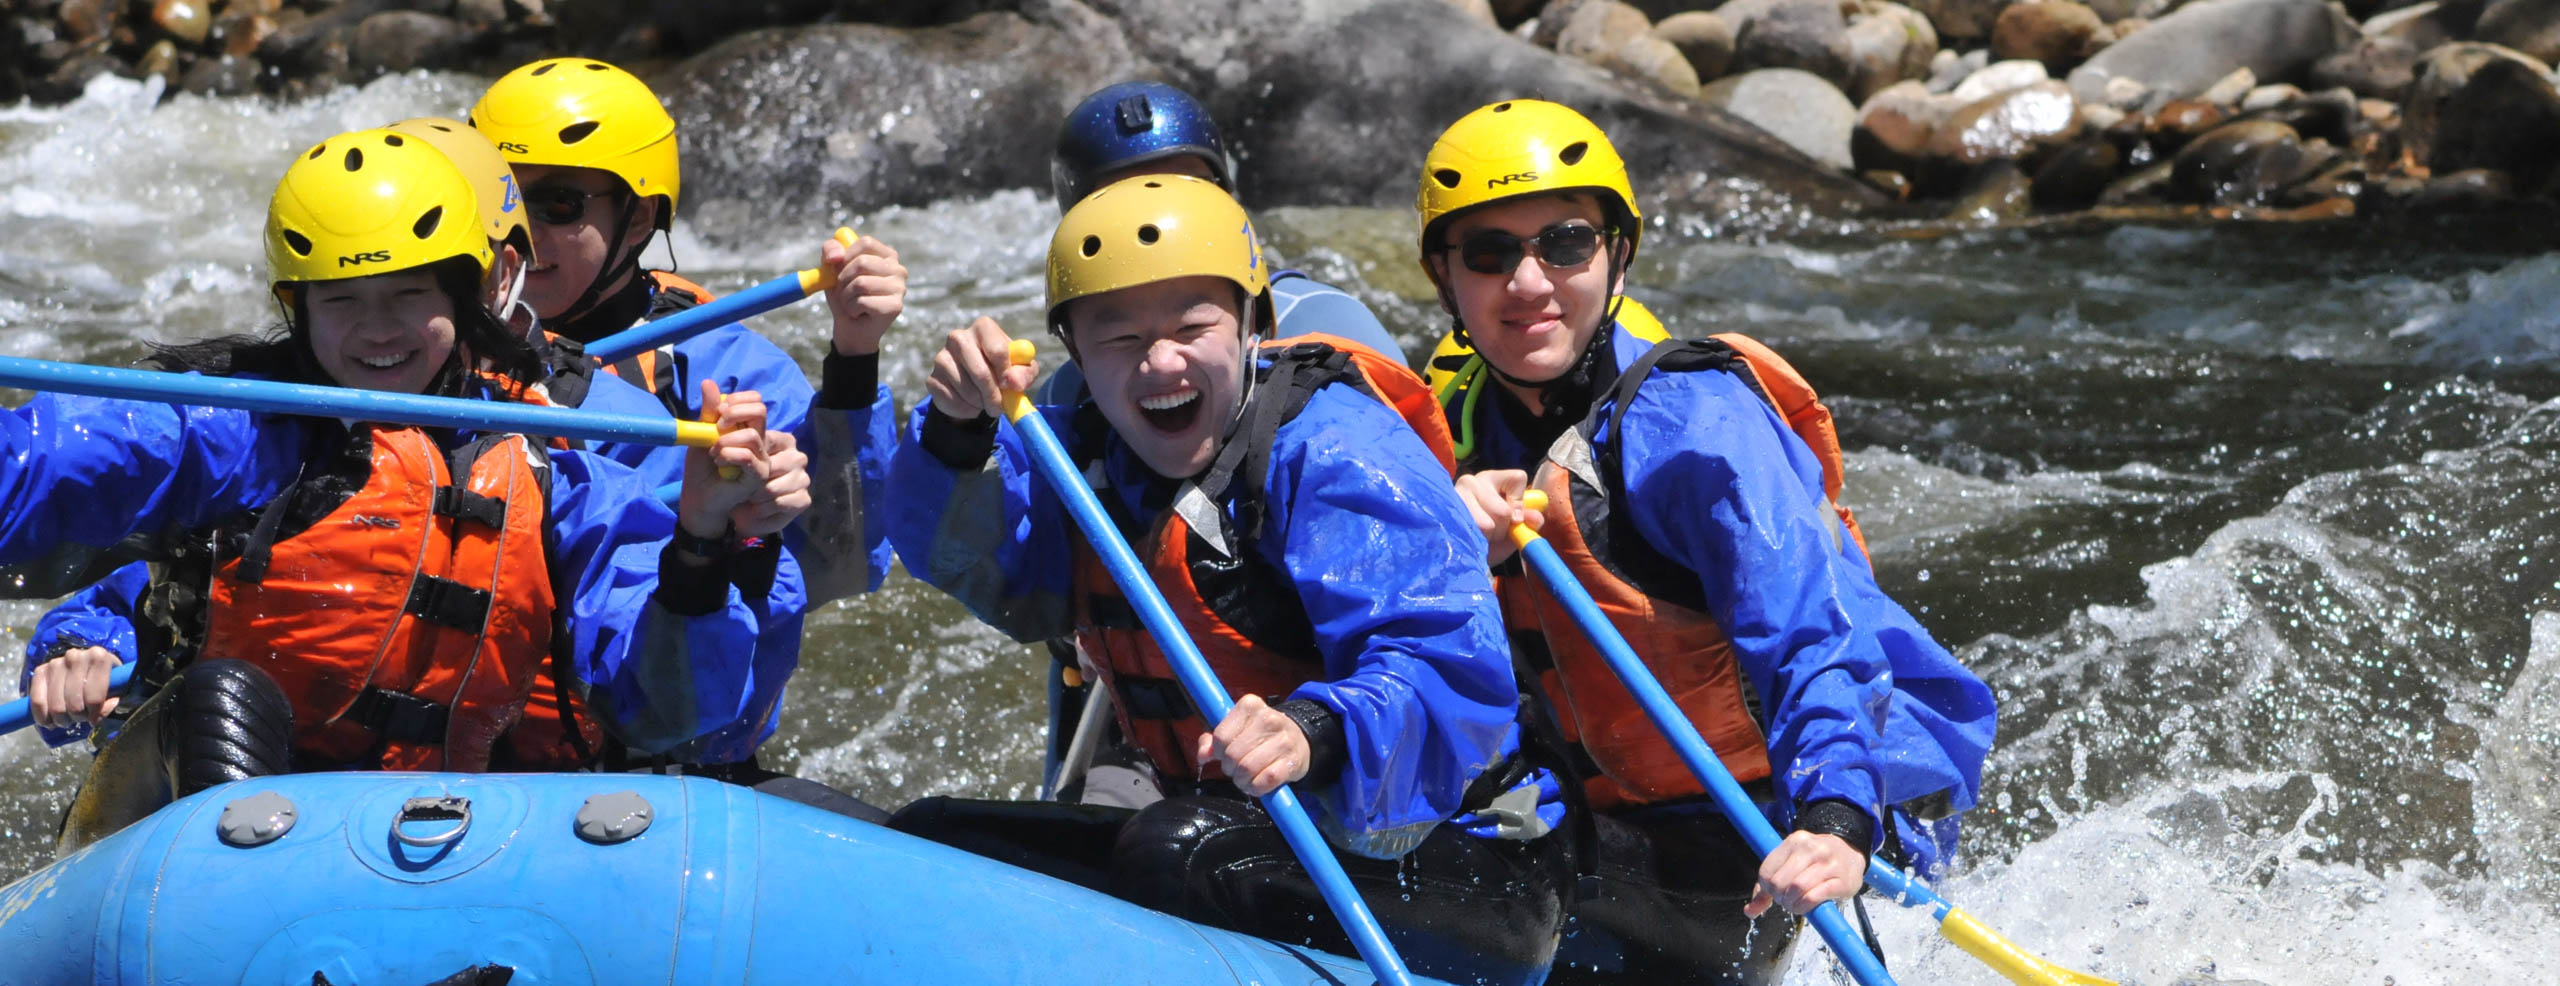 Group of people in a raft on the Dryway river having fun and smiling